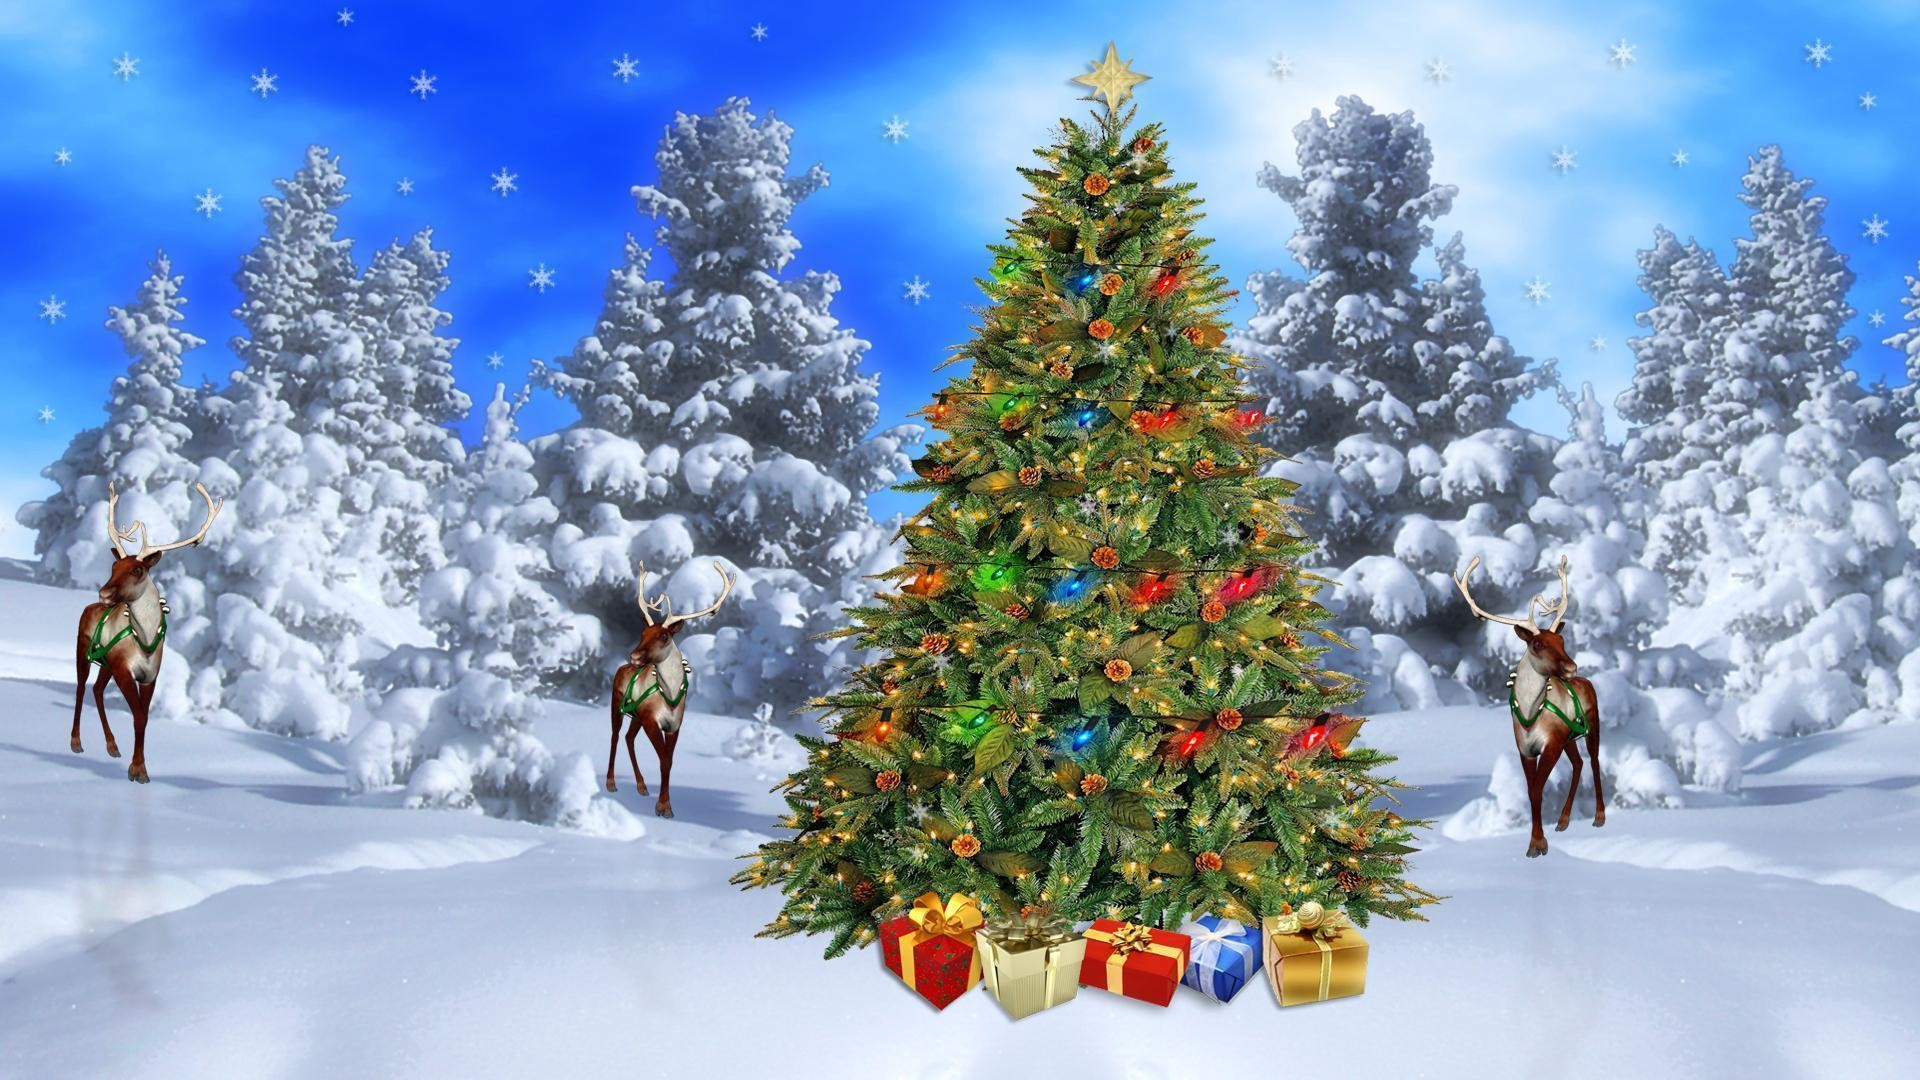 Wallpapers For > Hd Christmas Scenery Wallpaper